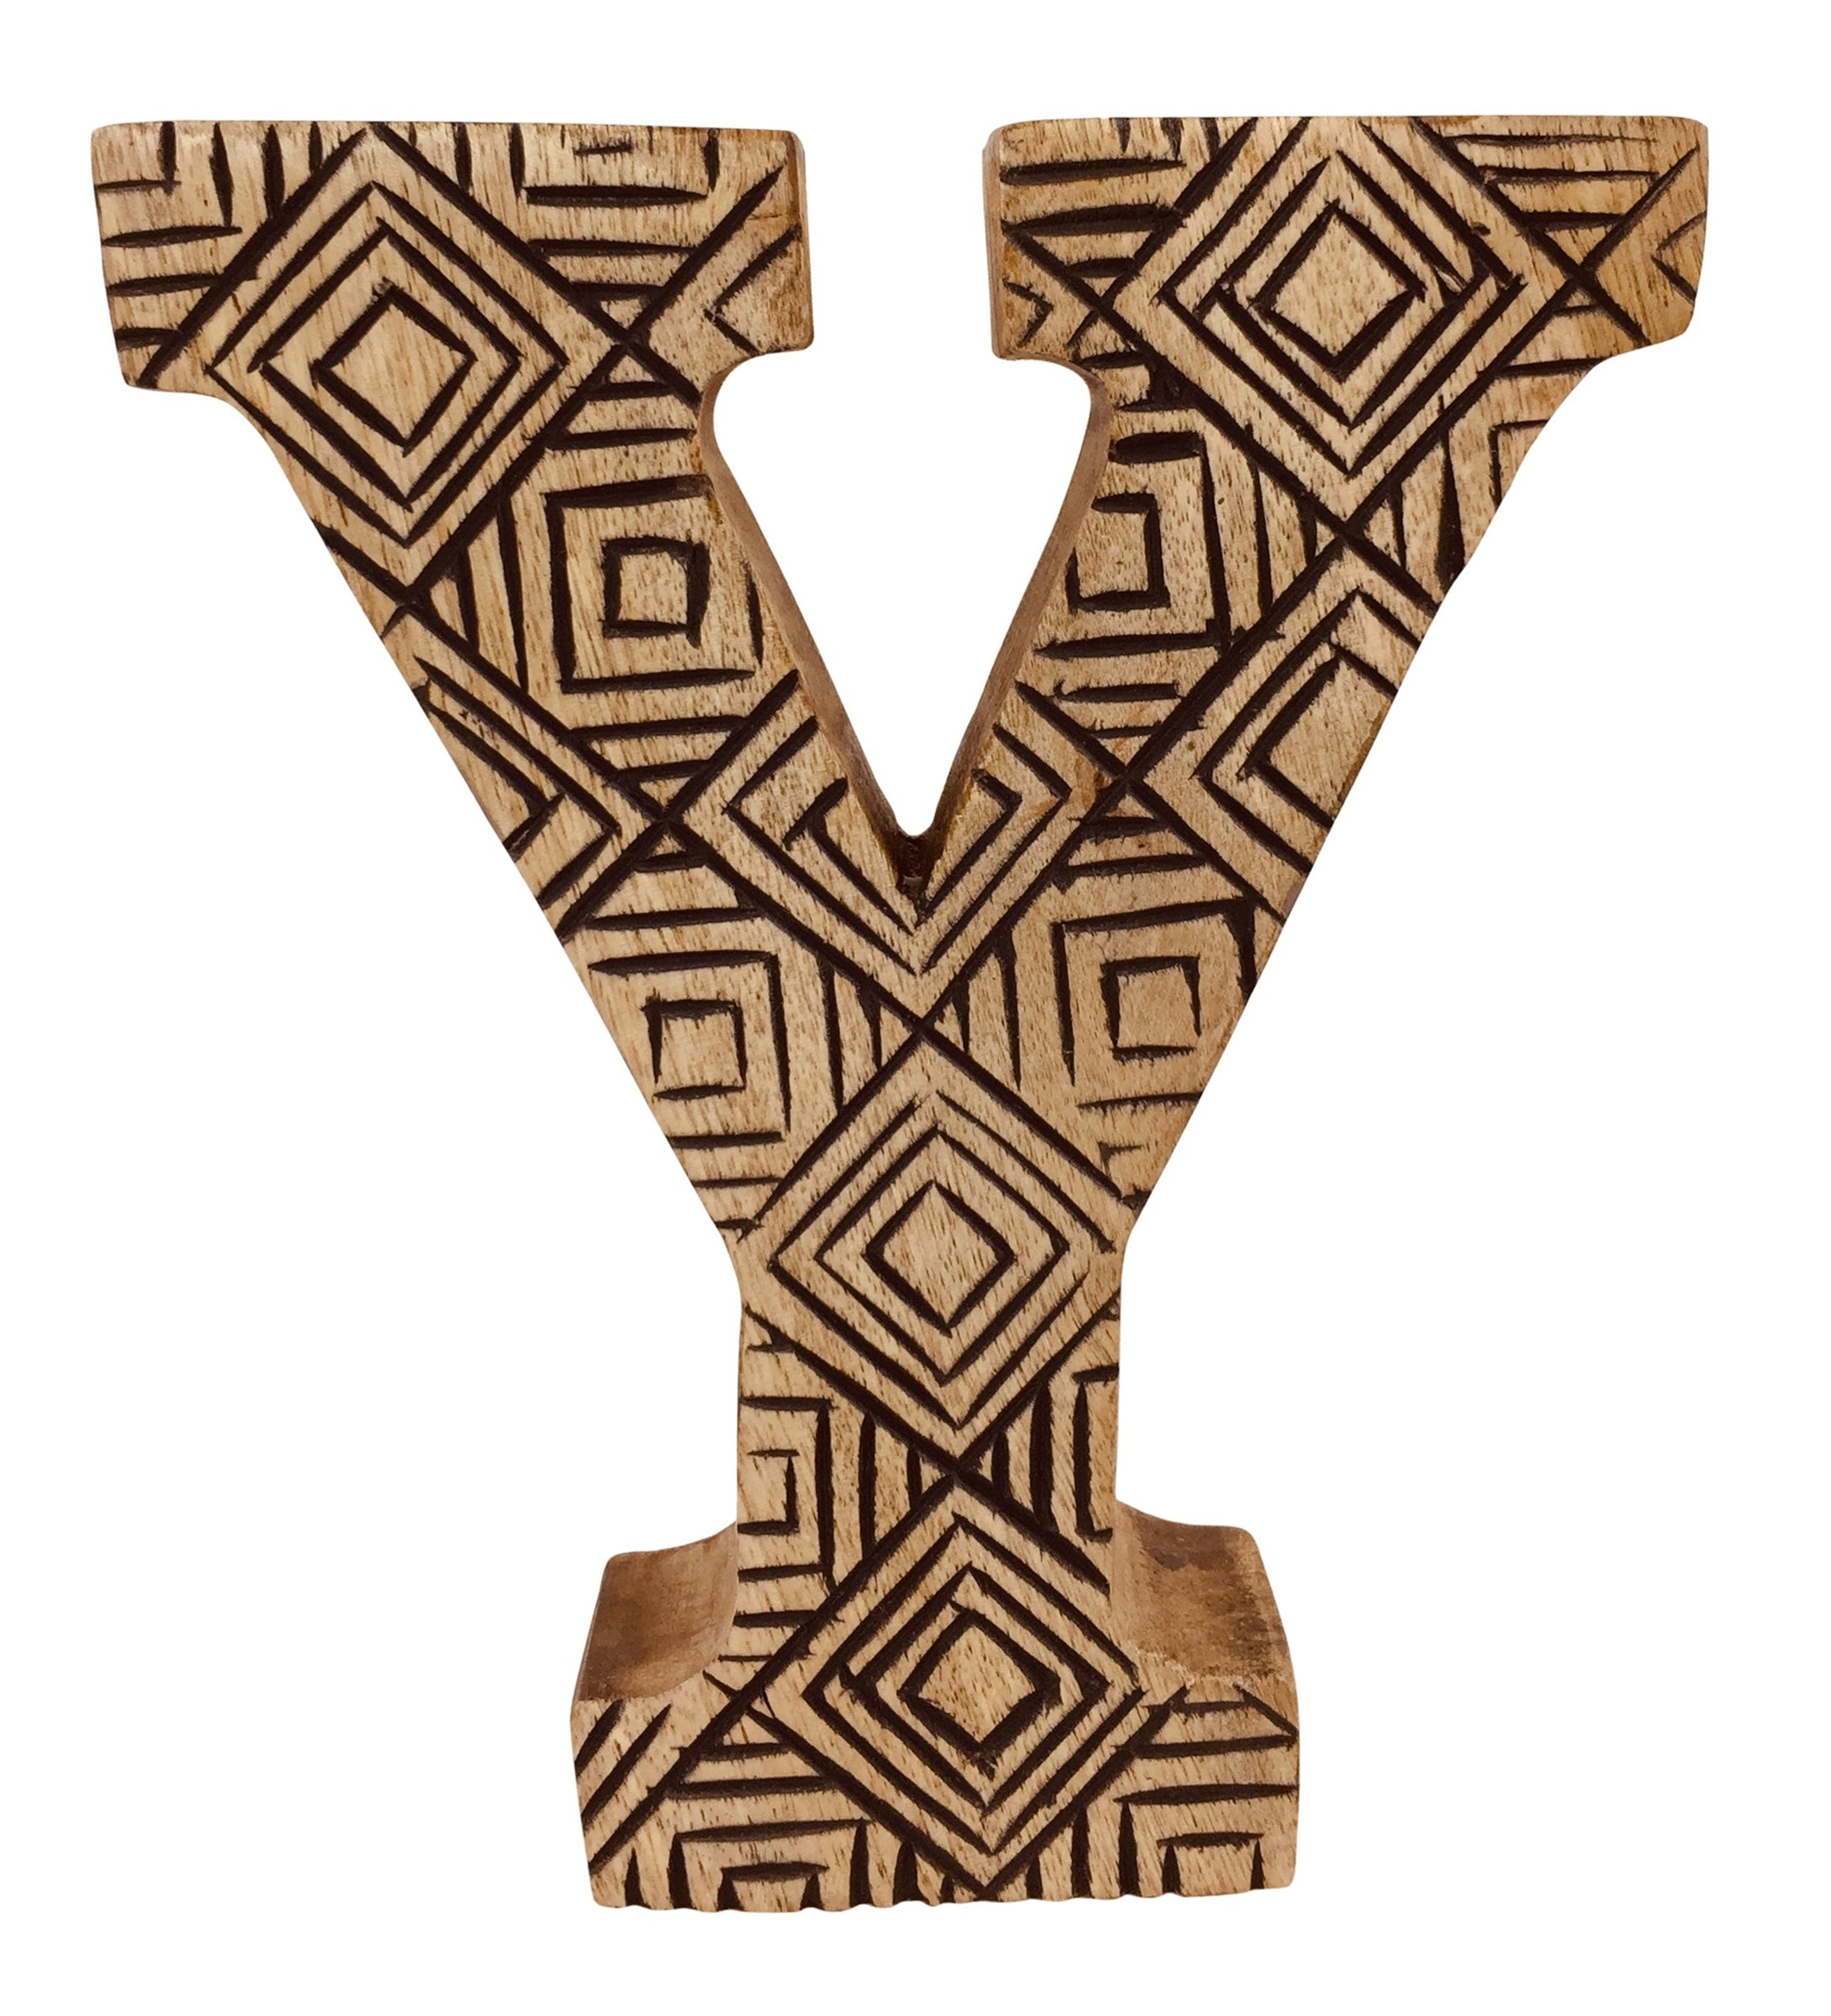 Hand Carved Wooden Geometric Letter Y, Home & Garden by Low Cost Gifts